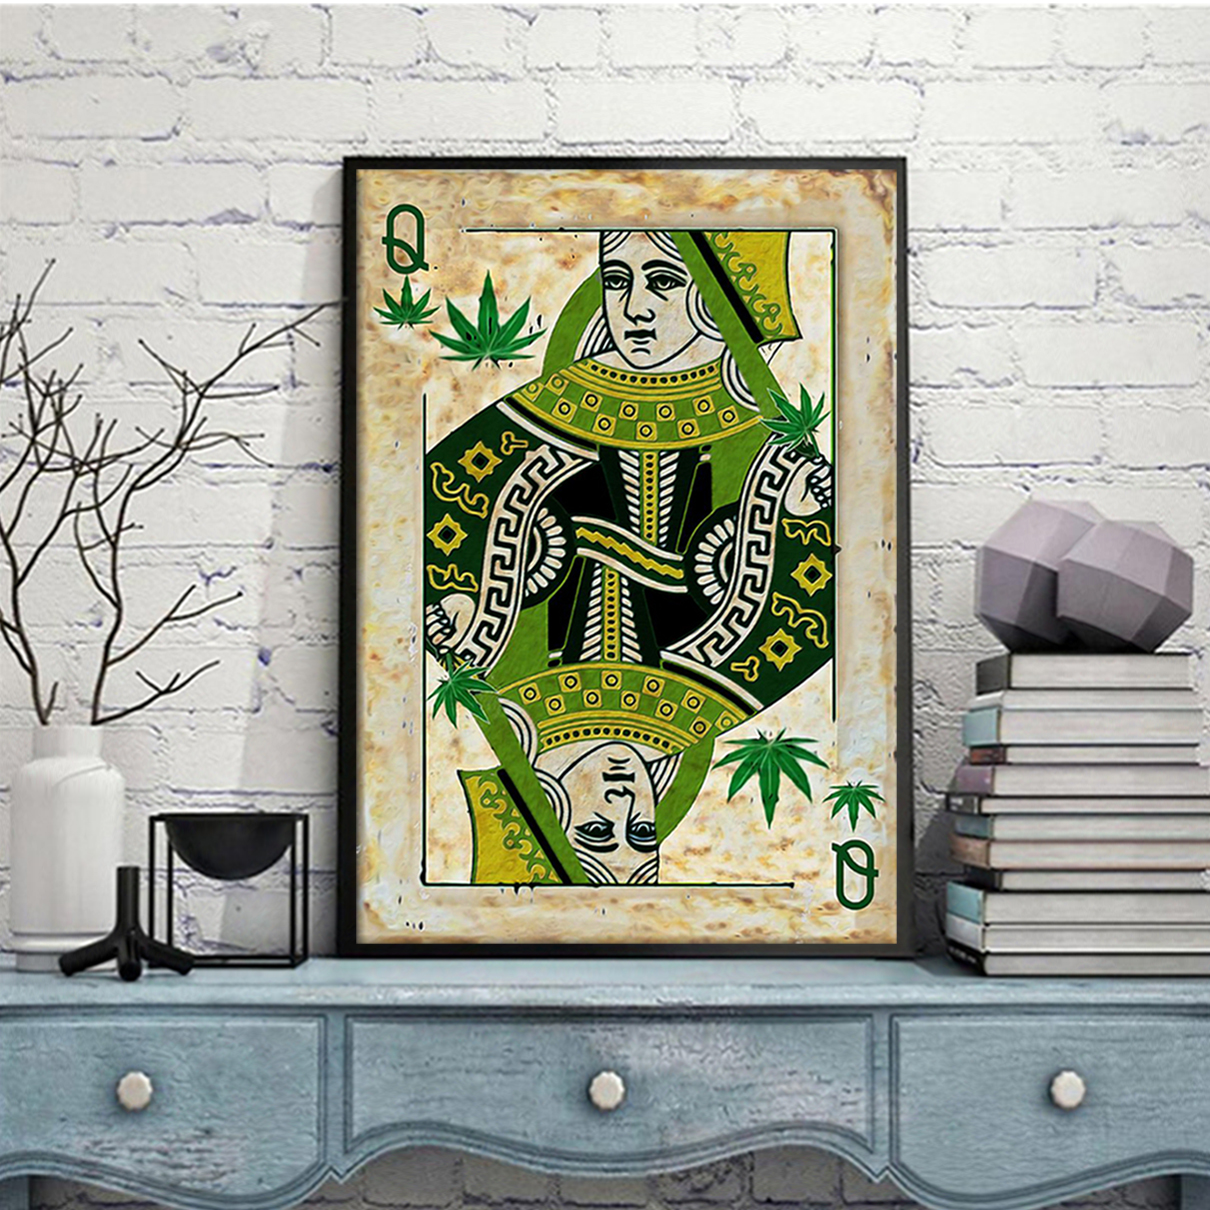 Queen of weed poster A3